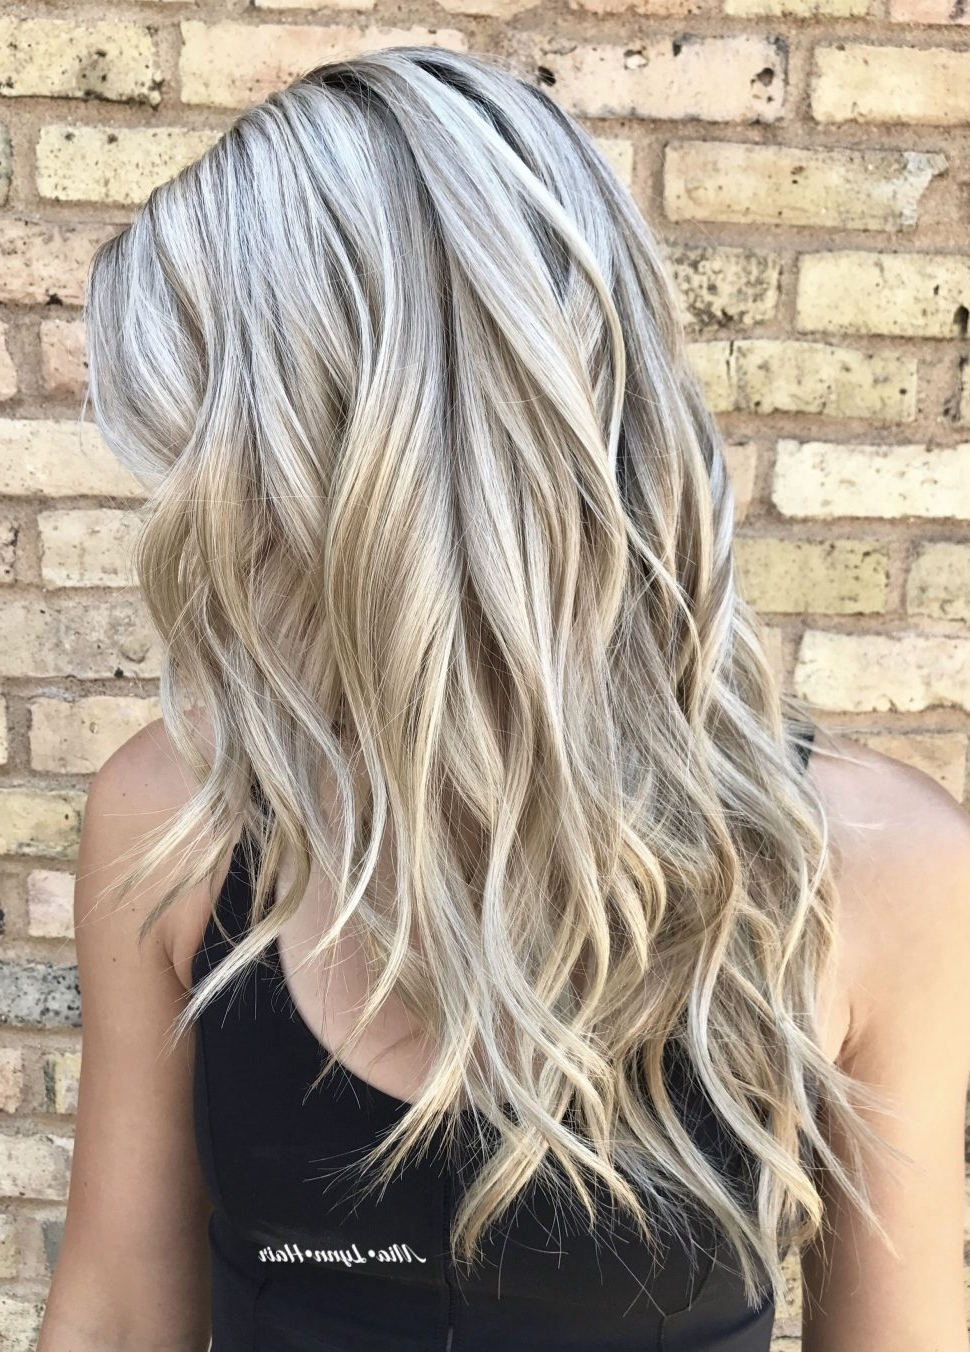 Best And Newest Dark Blonde Into White Hairstyles In Hair Color : White Blonde Highlights Delectable On Brown Hair Black (View 8 of 20)